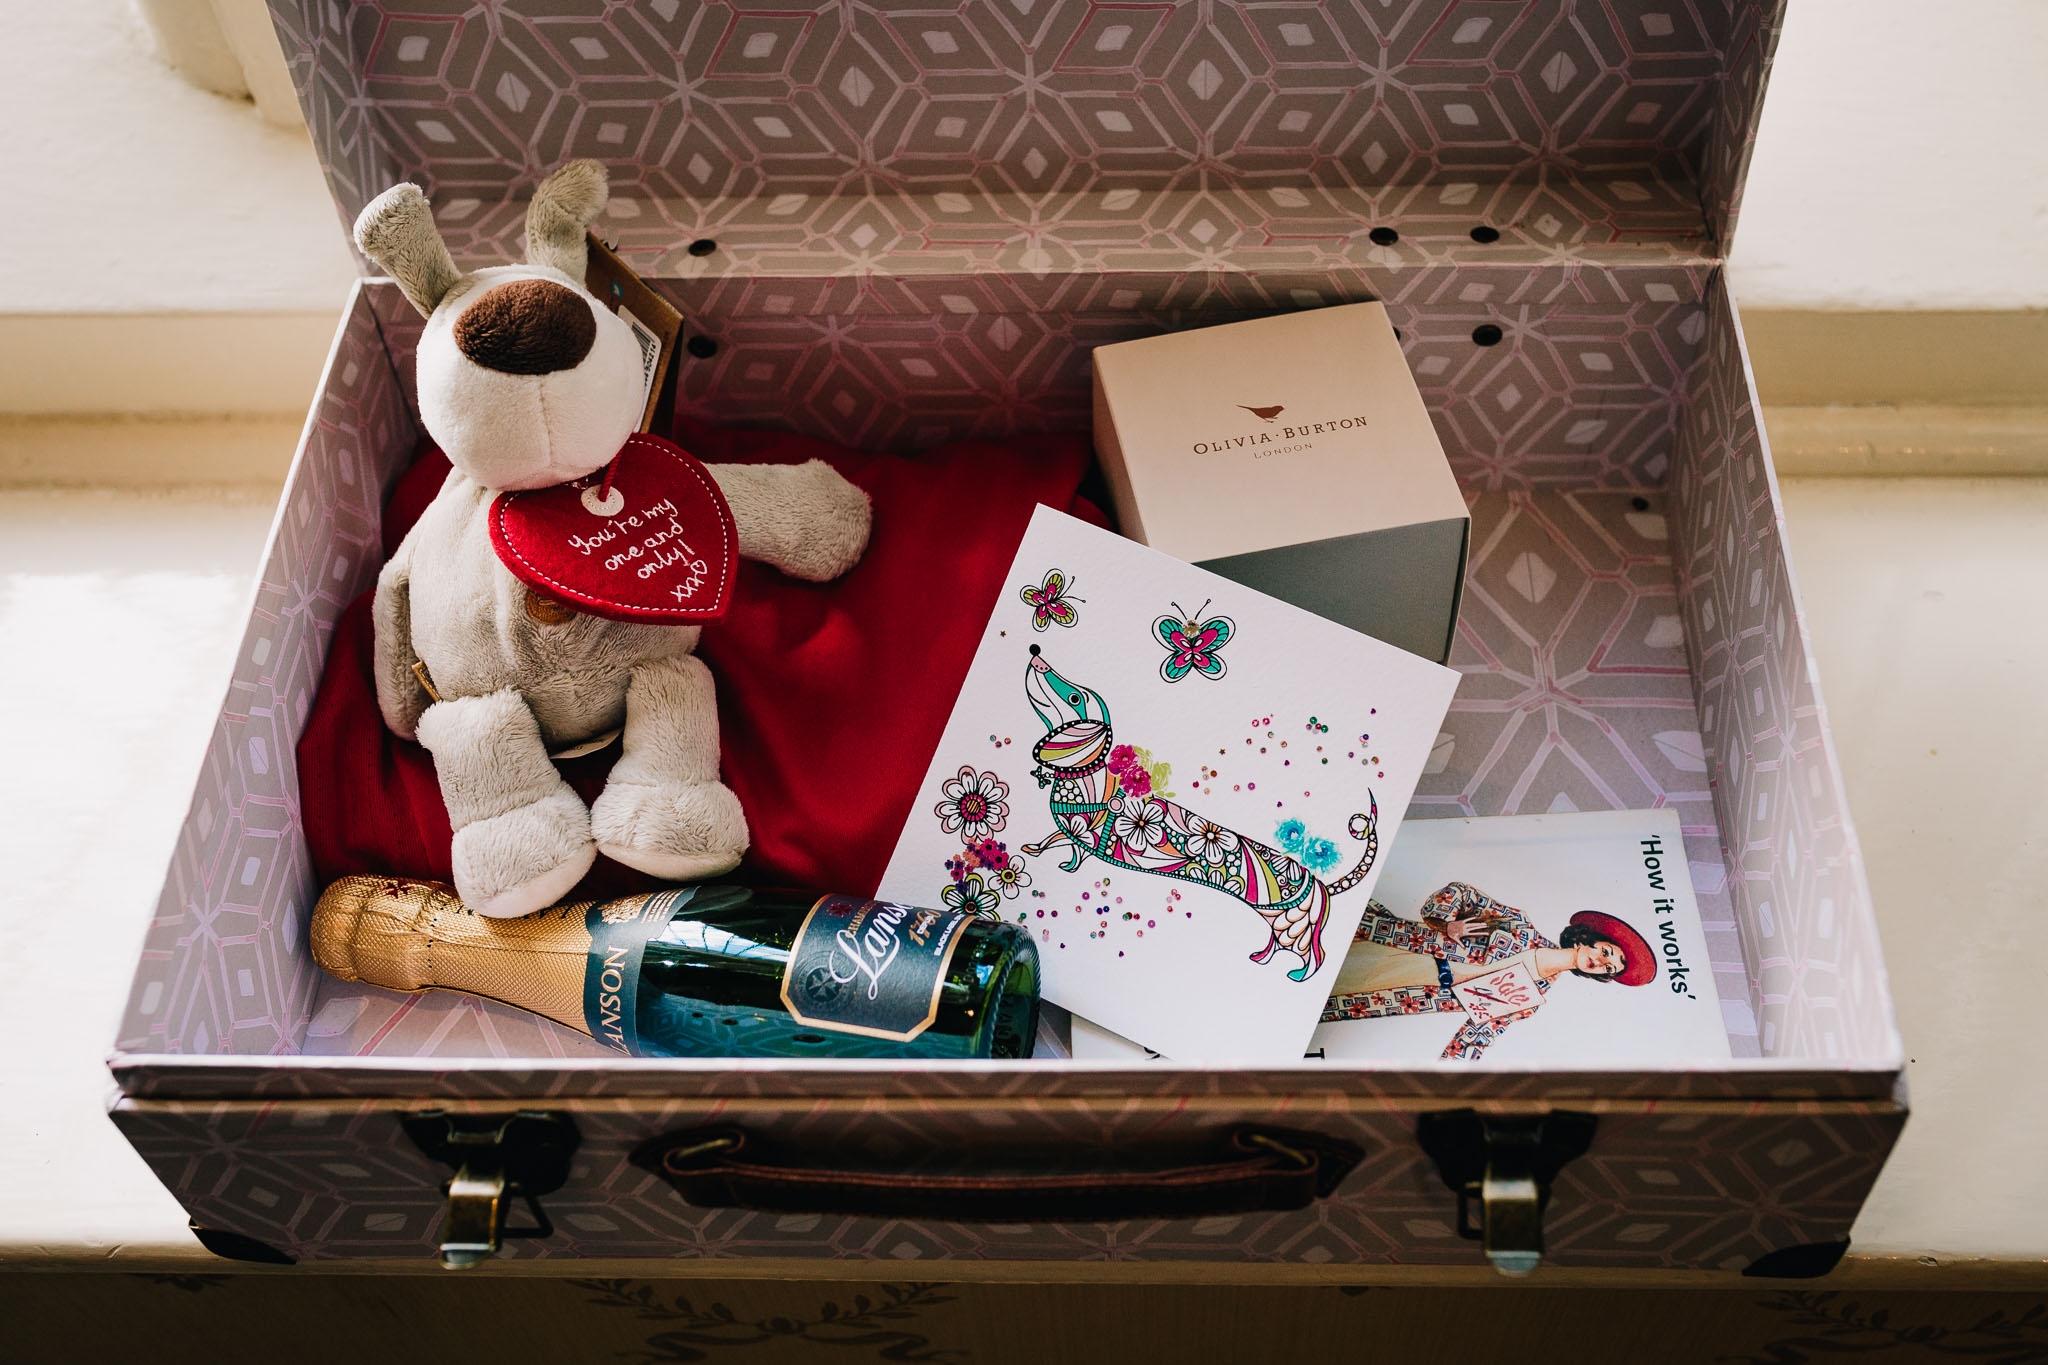 RUSTIC SUITCASE OF WEDDING GIFTS FROM BRIDE